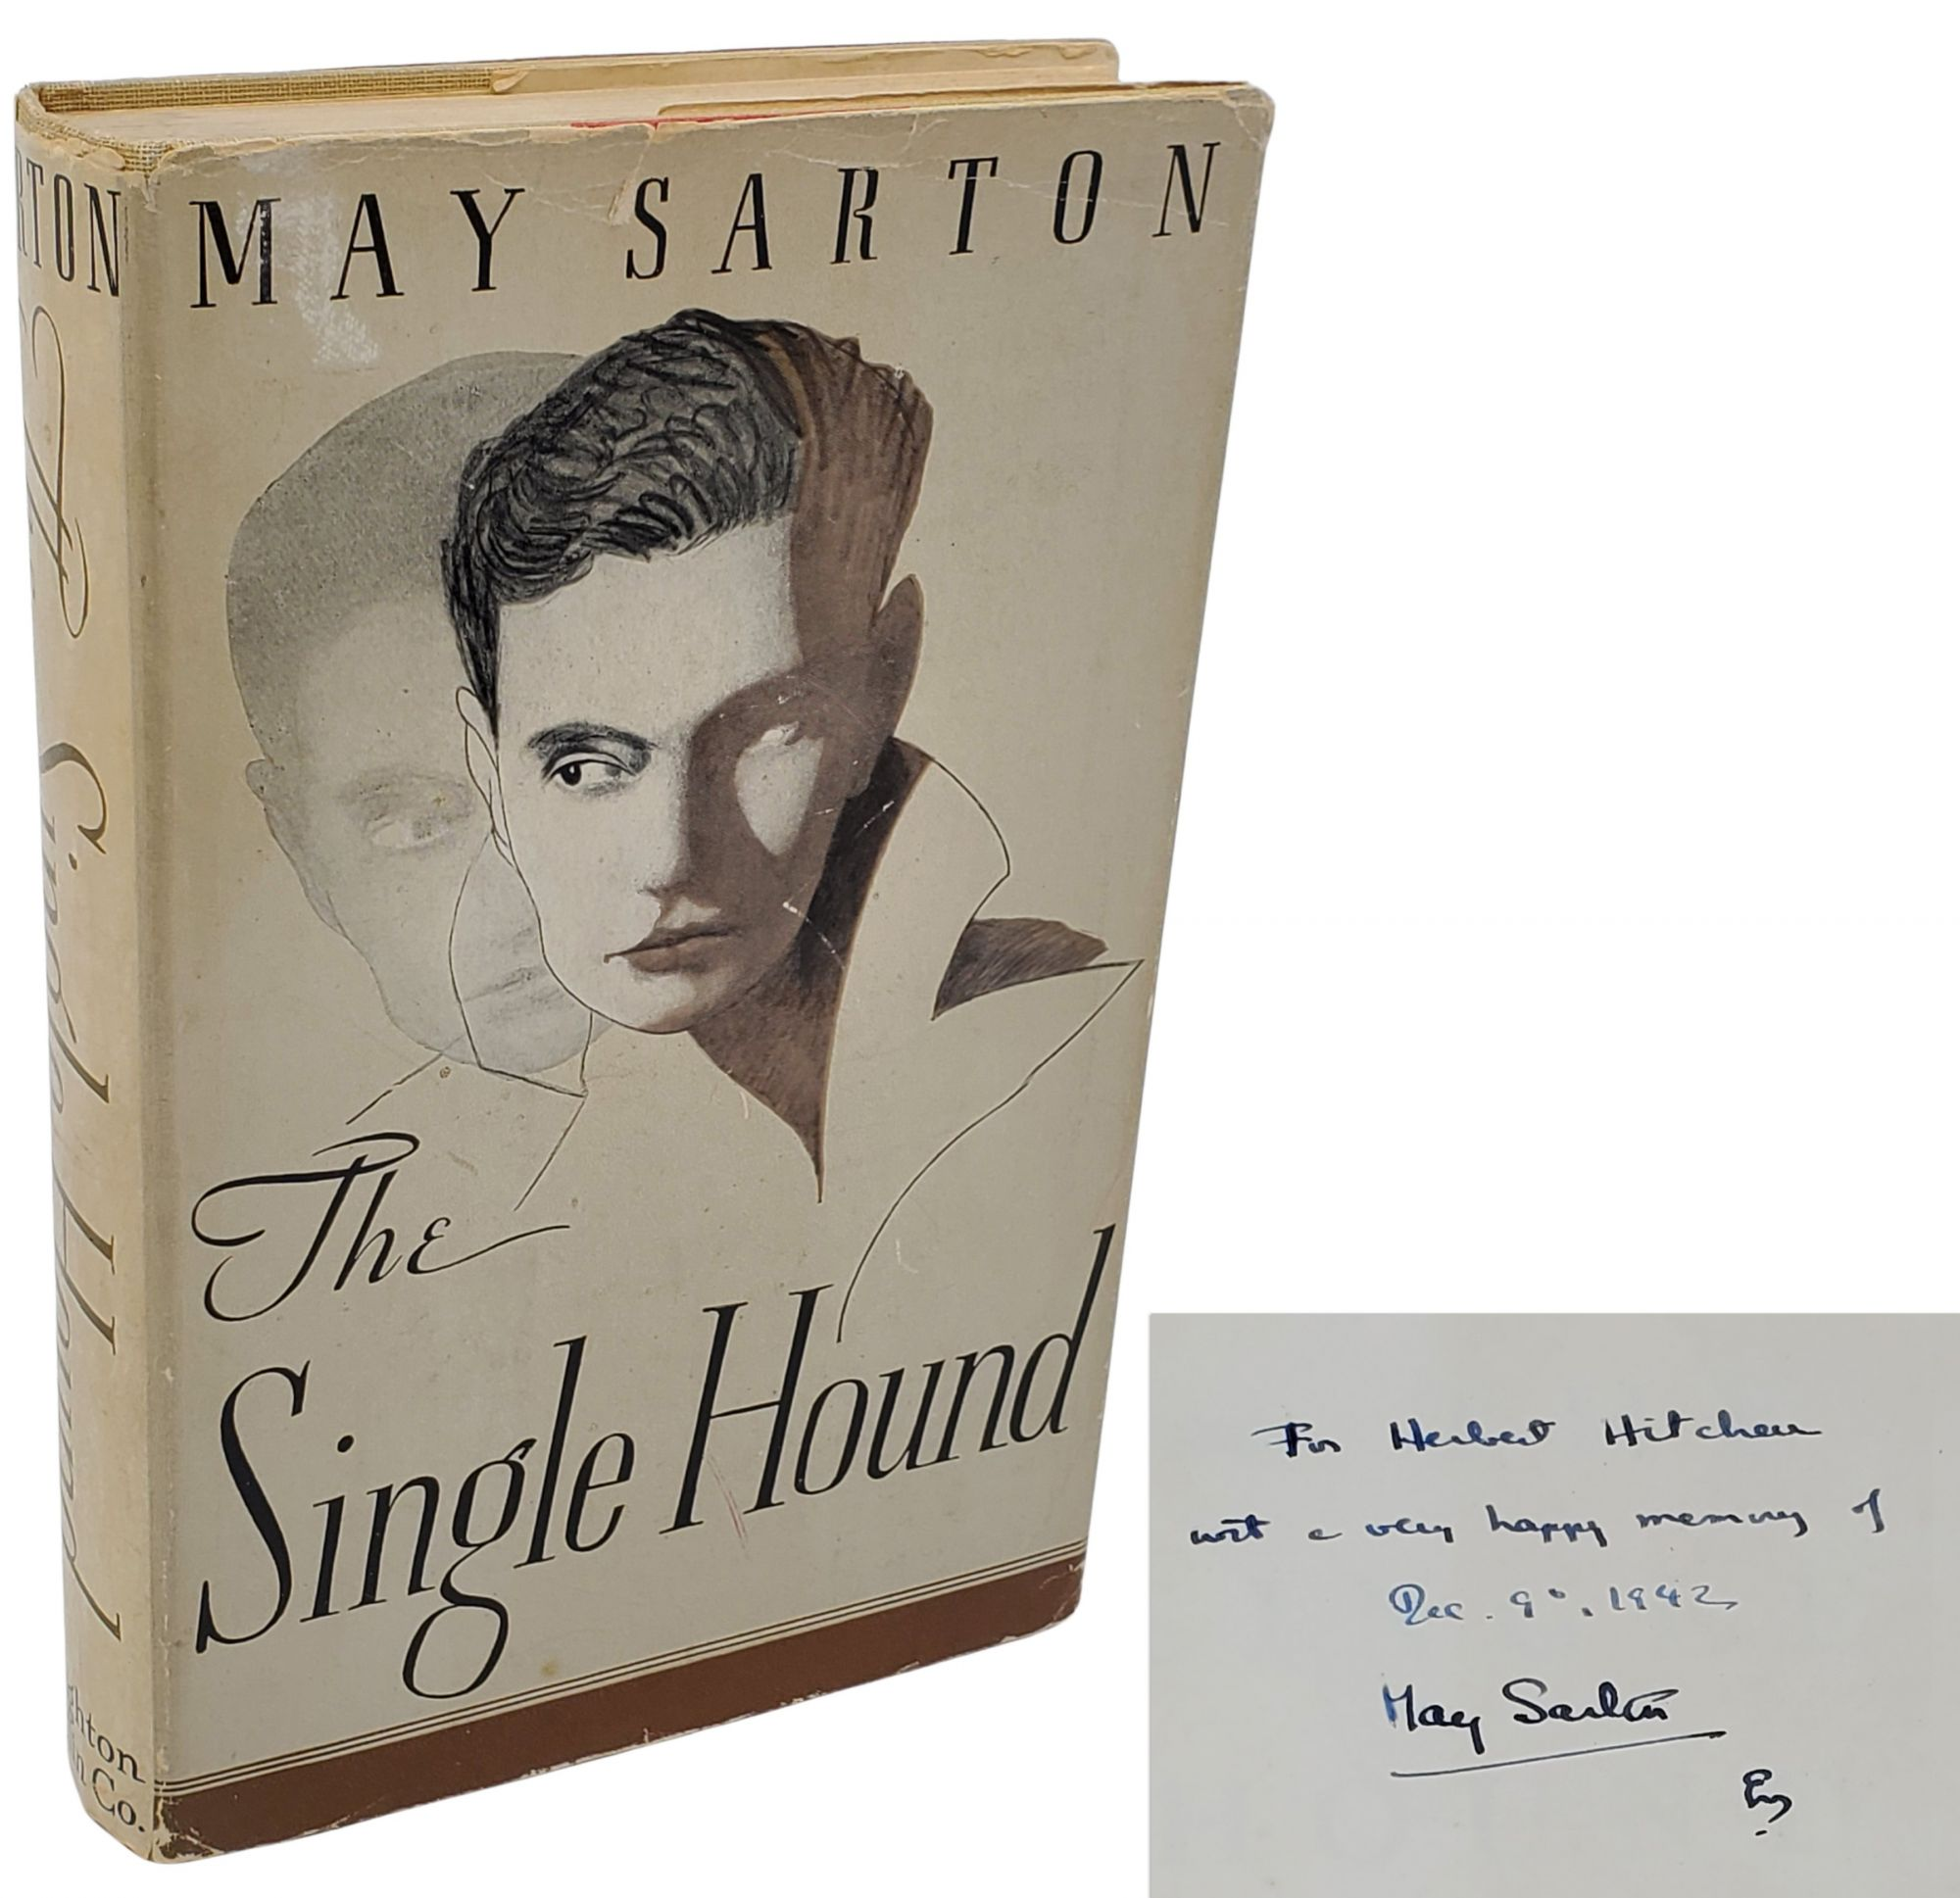 THE SINGLE HOUND. May Sarton.